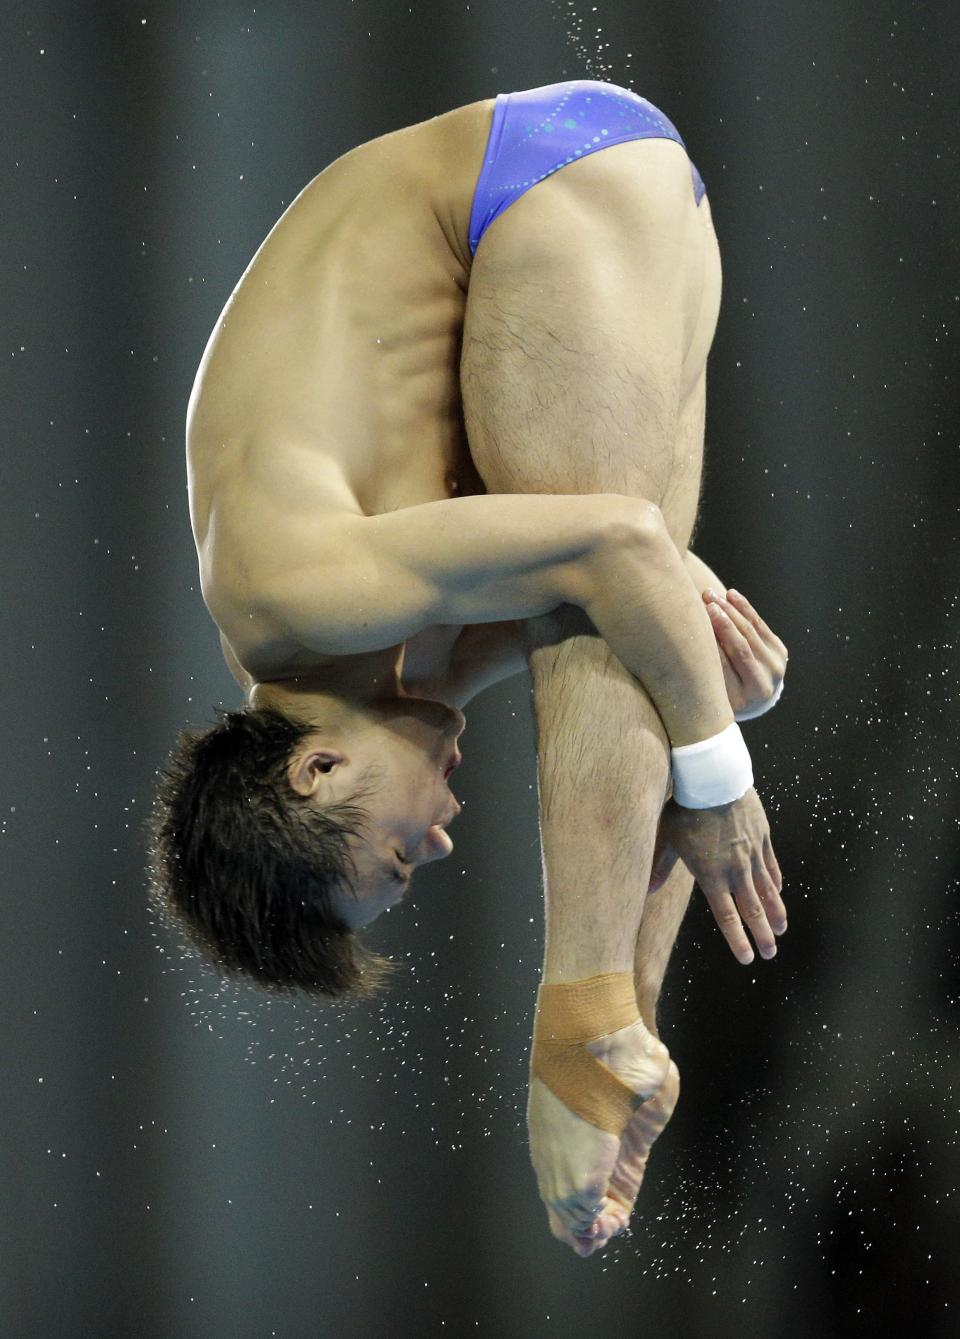 Silver medalist Qiu Bo from China competes during the men's 10-meter platform diving final at the Aquatics Centre in the Olympic Park during the 2012 Summer Olympics in London, Saturday, Aug. 11, 2012. (AP Photo/Michael Sohn)